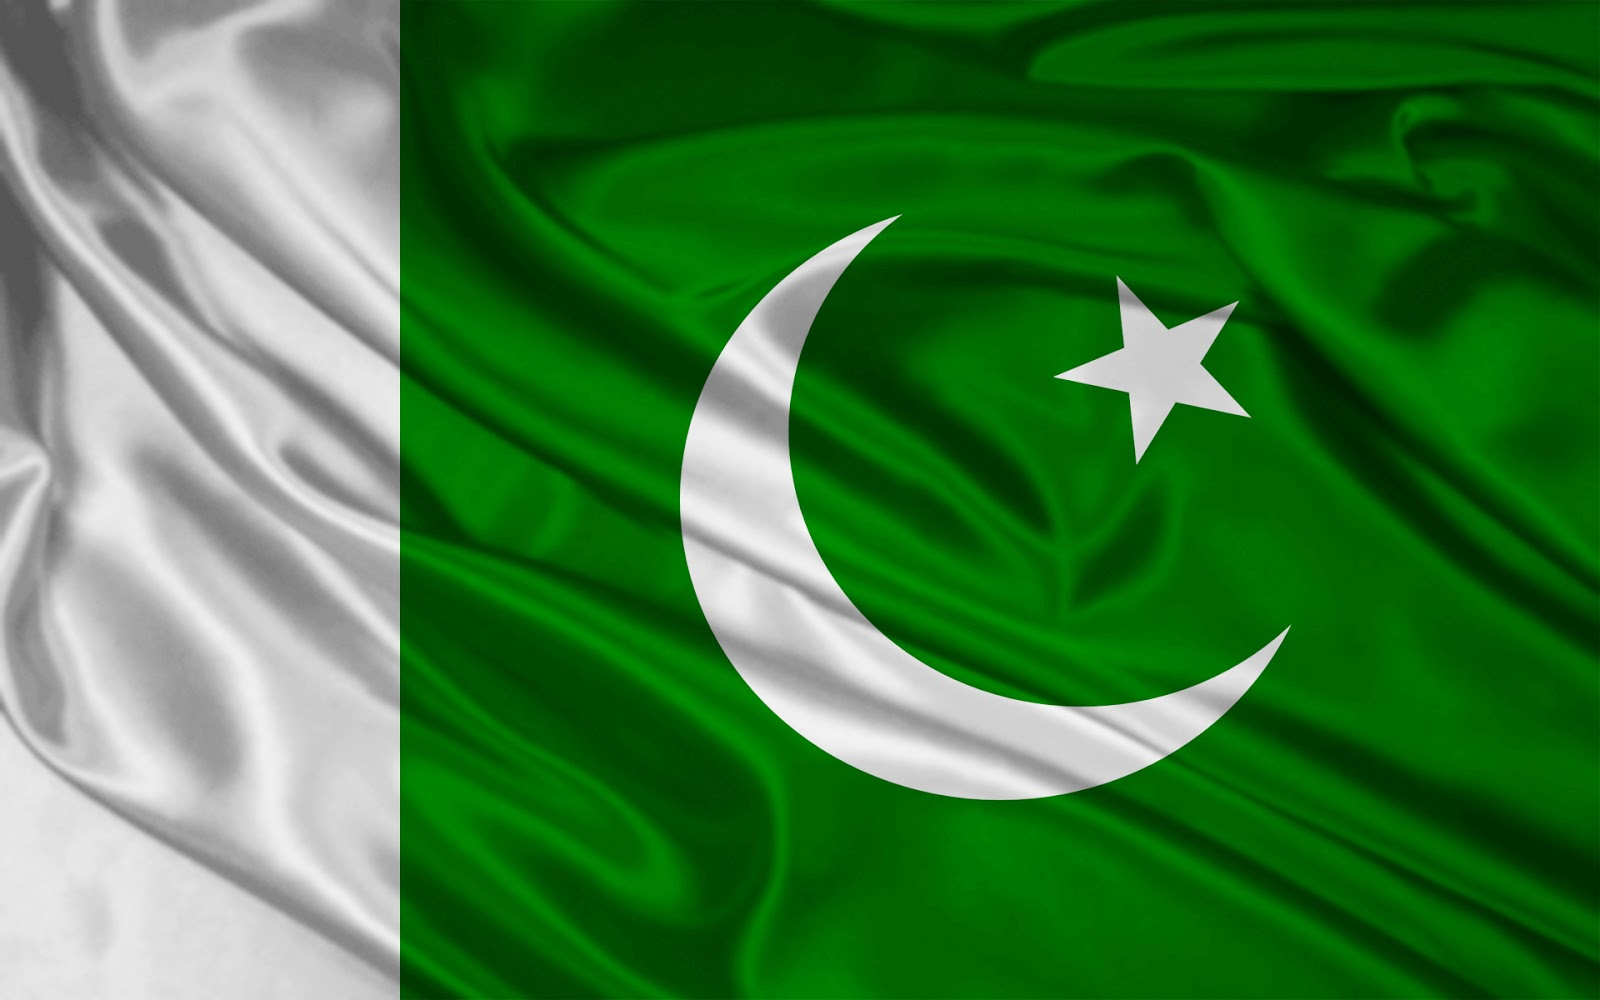 pakistani flag high resolution hd wallpapers download 1600x1000